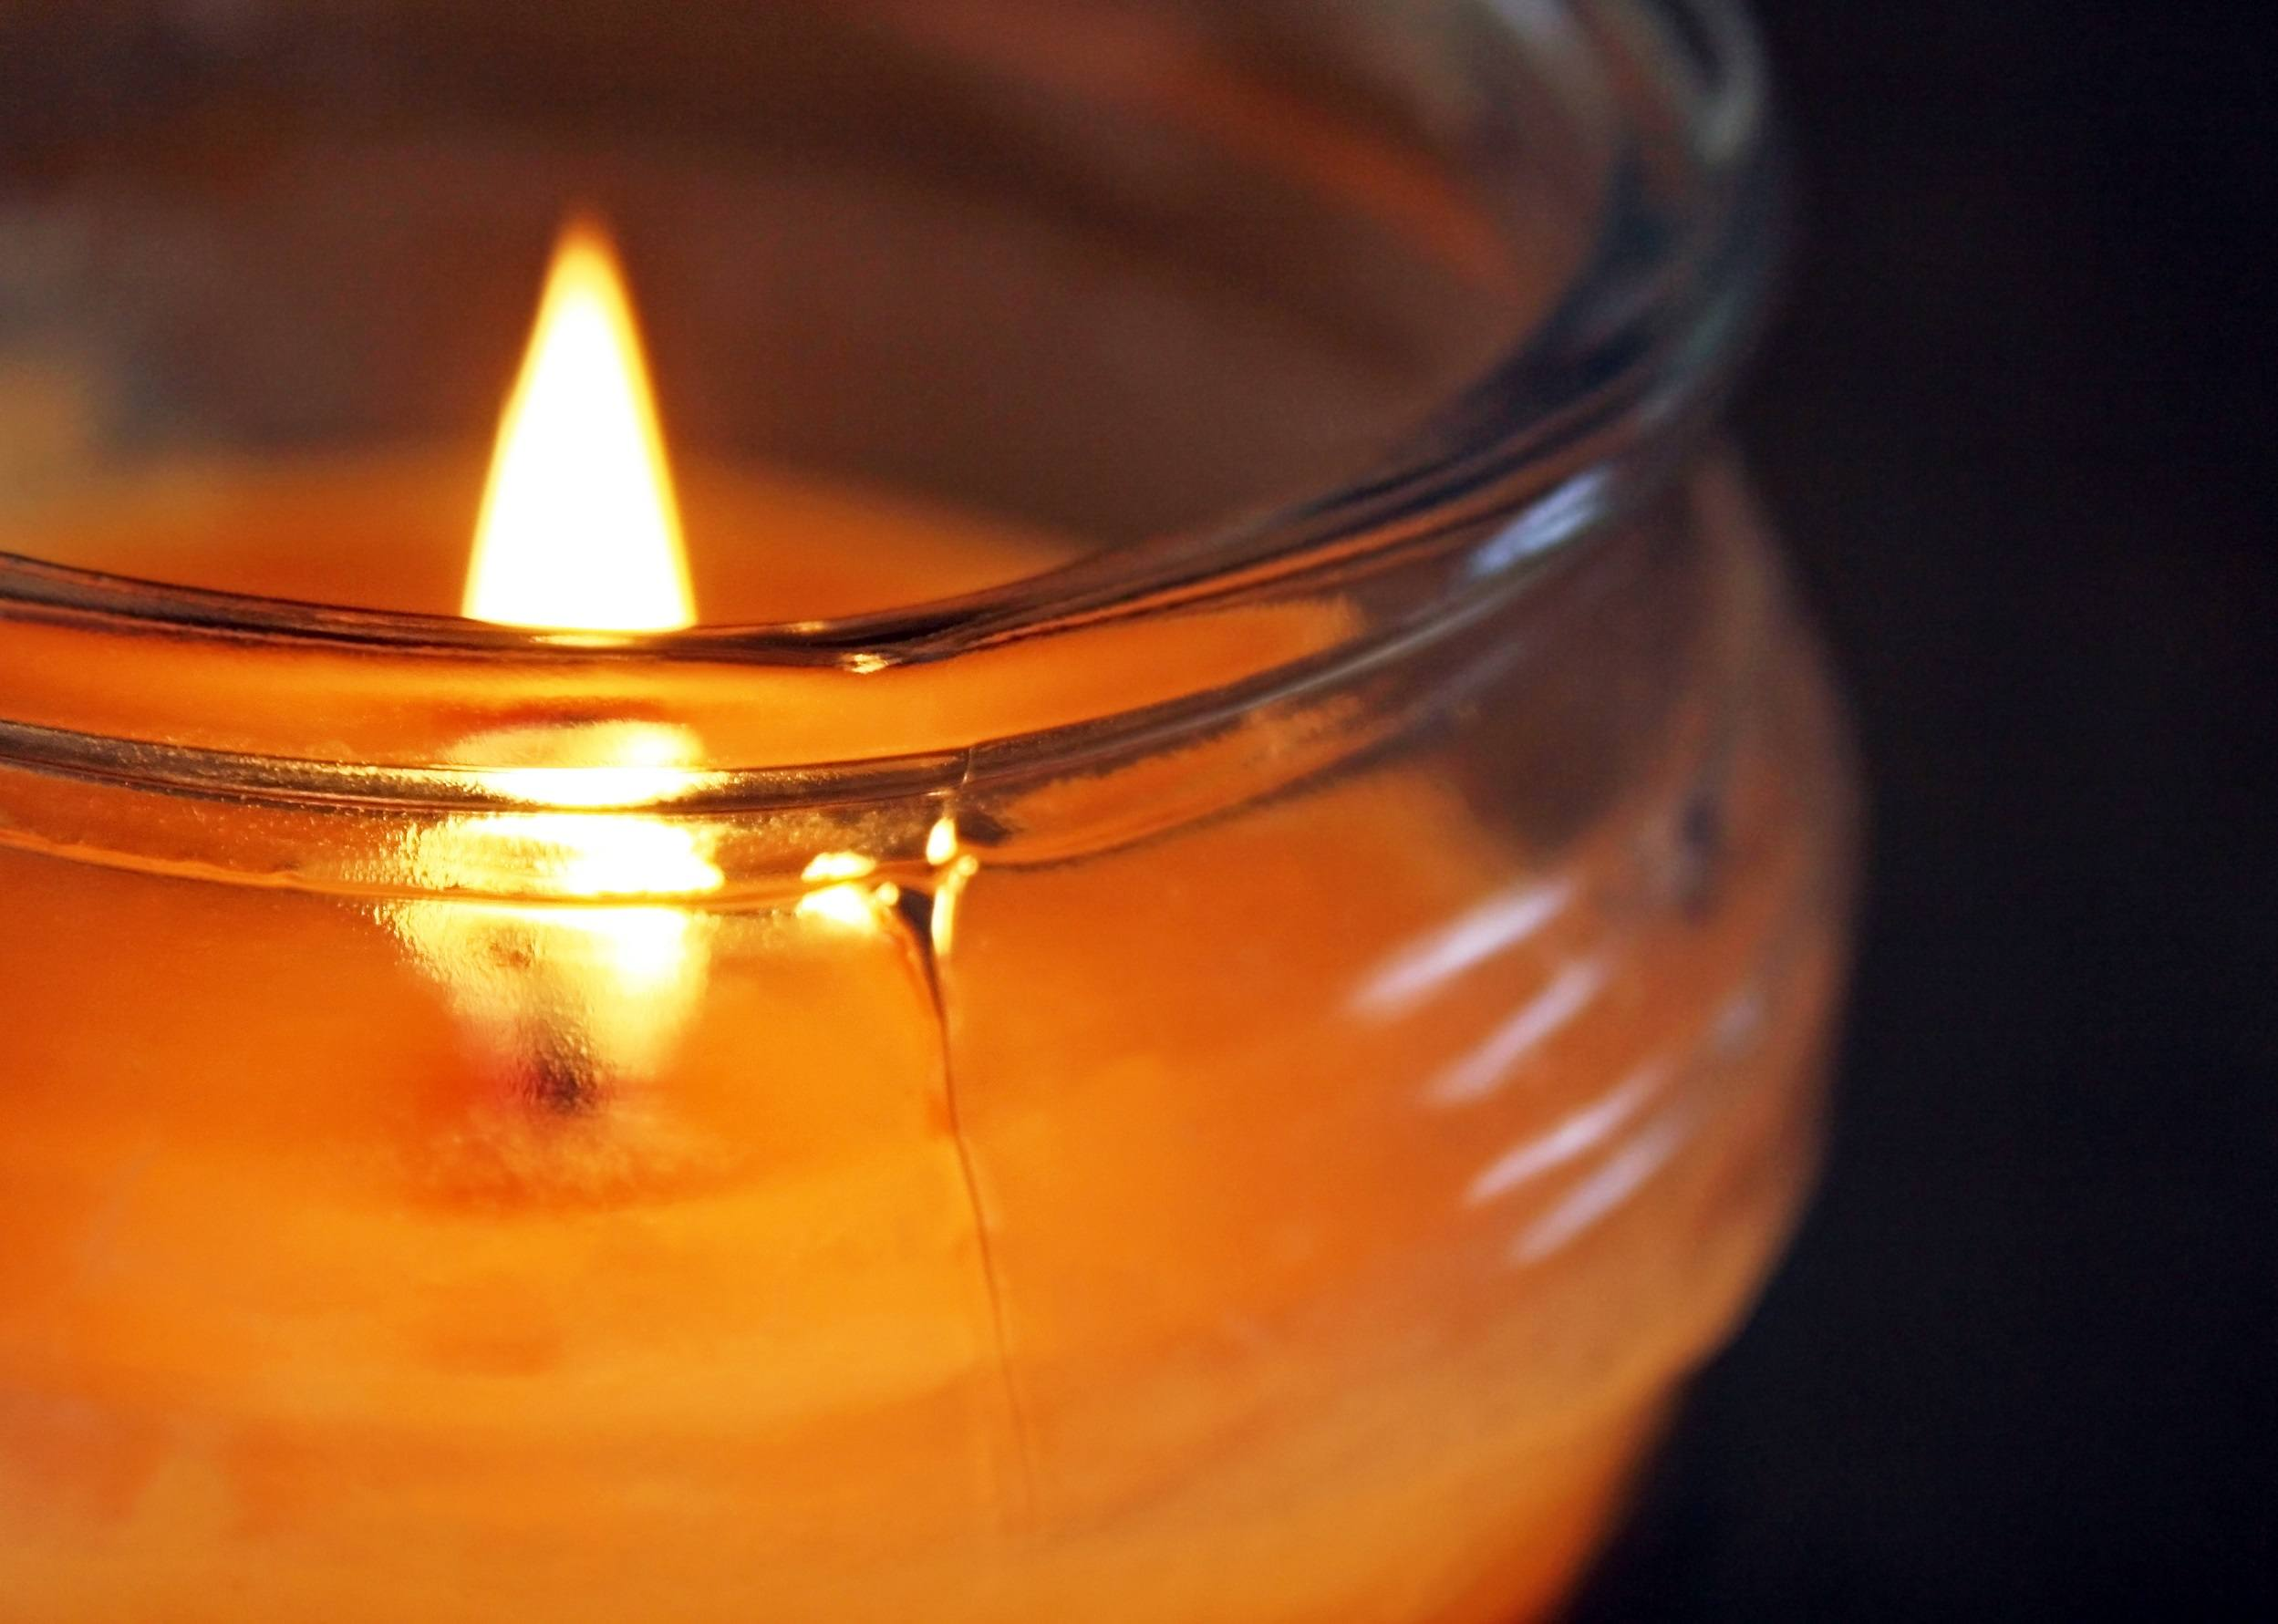 Candle burning in a glass jar